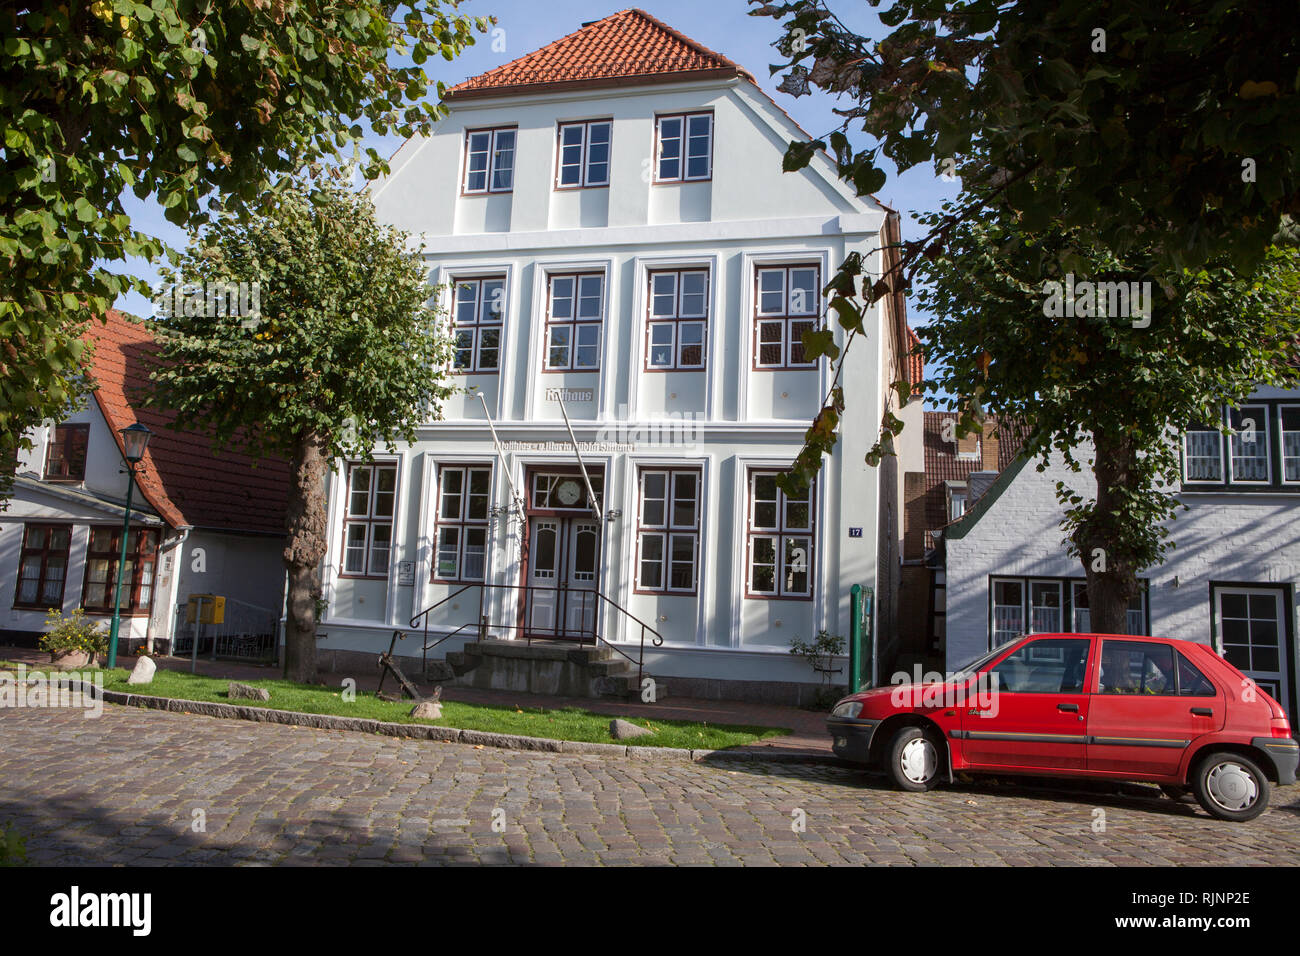 Townhall of Arnis, Schleswig-Holstein, Germany, Europe - Stock Image